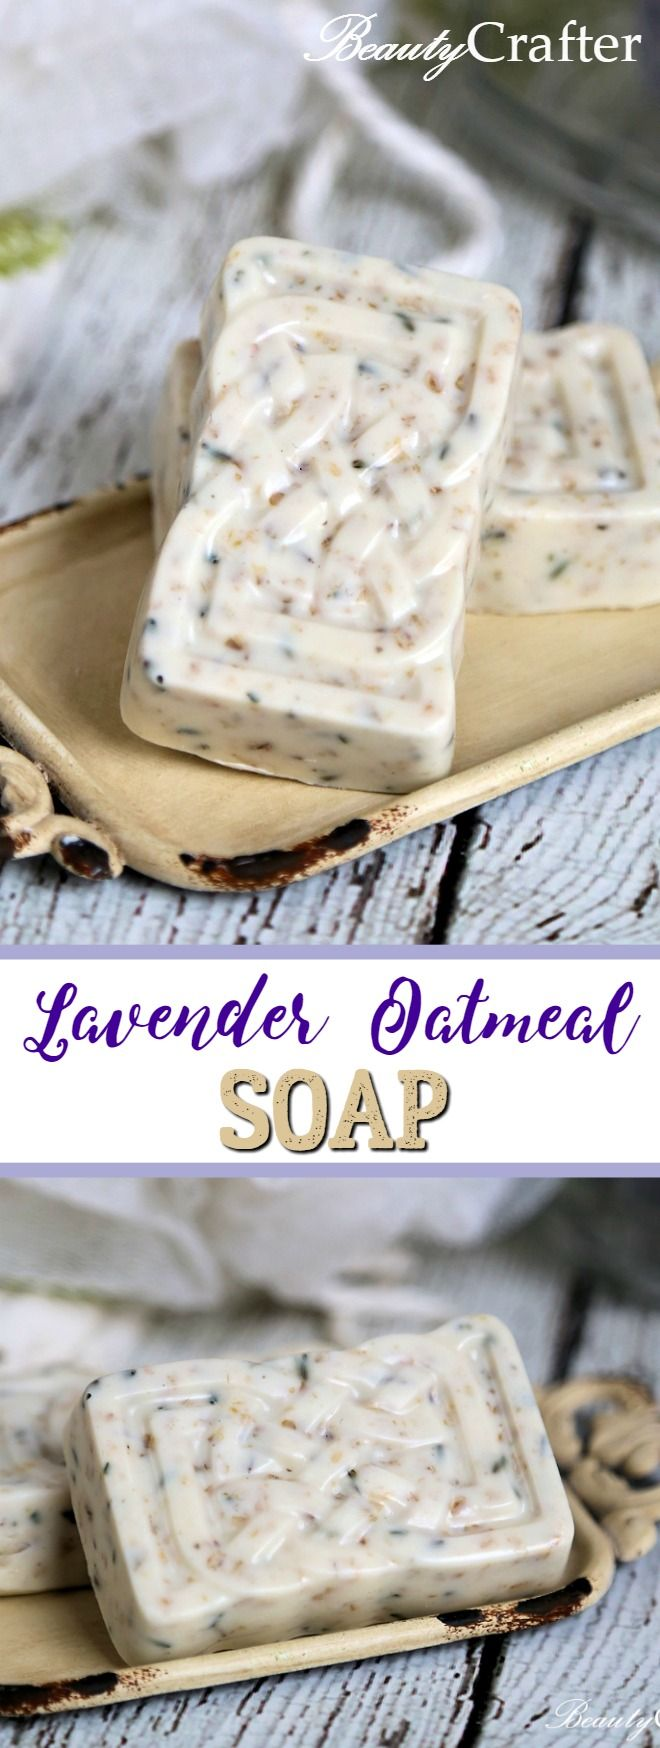 Homemade Lavender Oatmeal Soap Recipe for Mother's Day